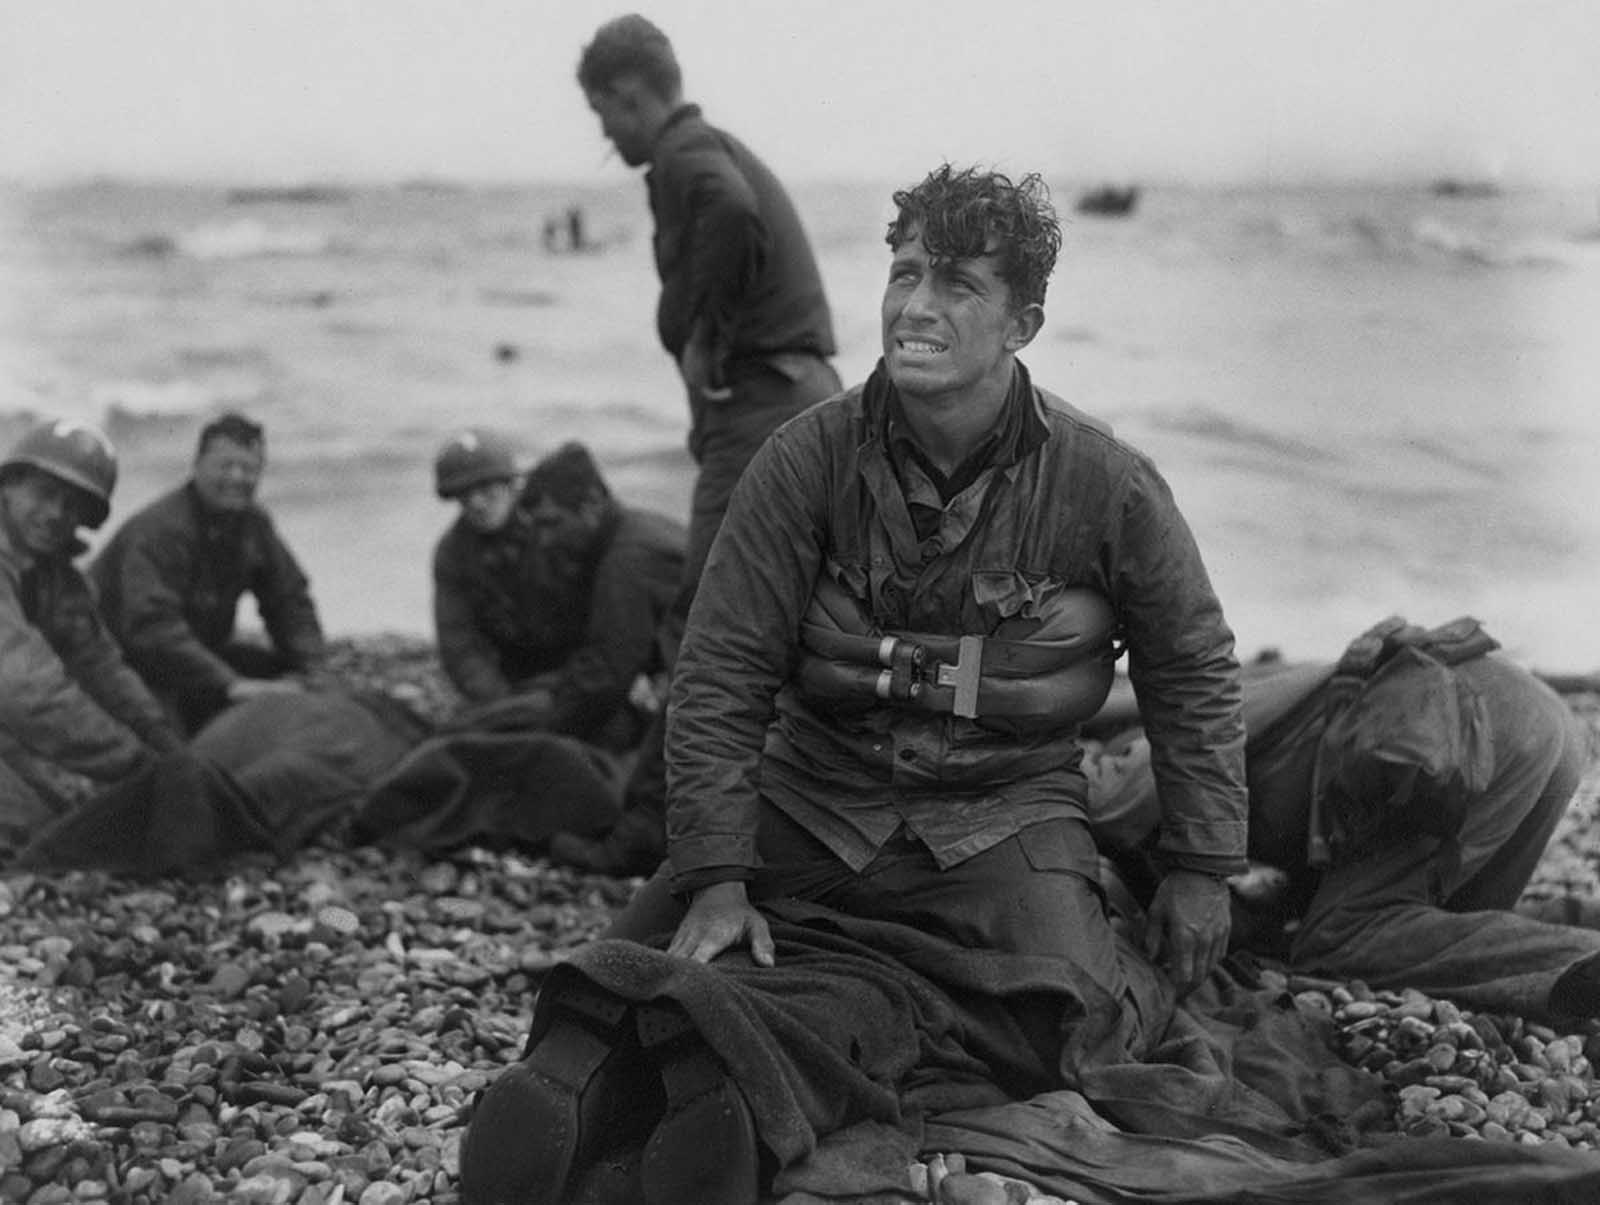 American soldiers on Omaha Beach recover the dead after the June 6, 1944, D-Day invasion of France.